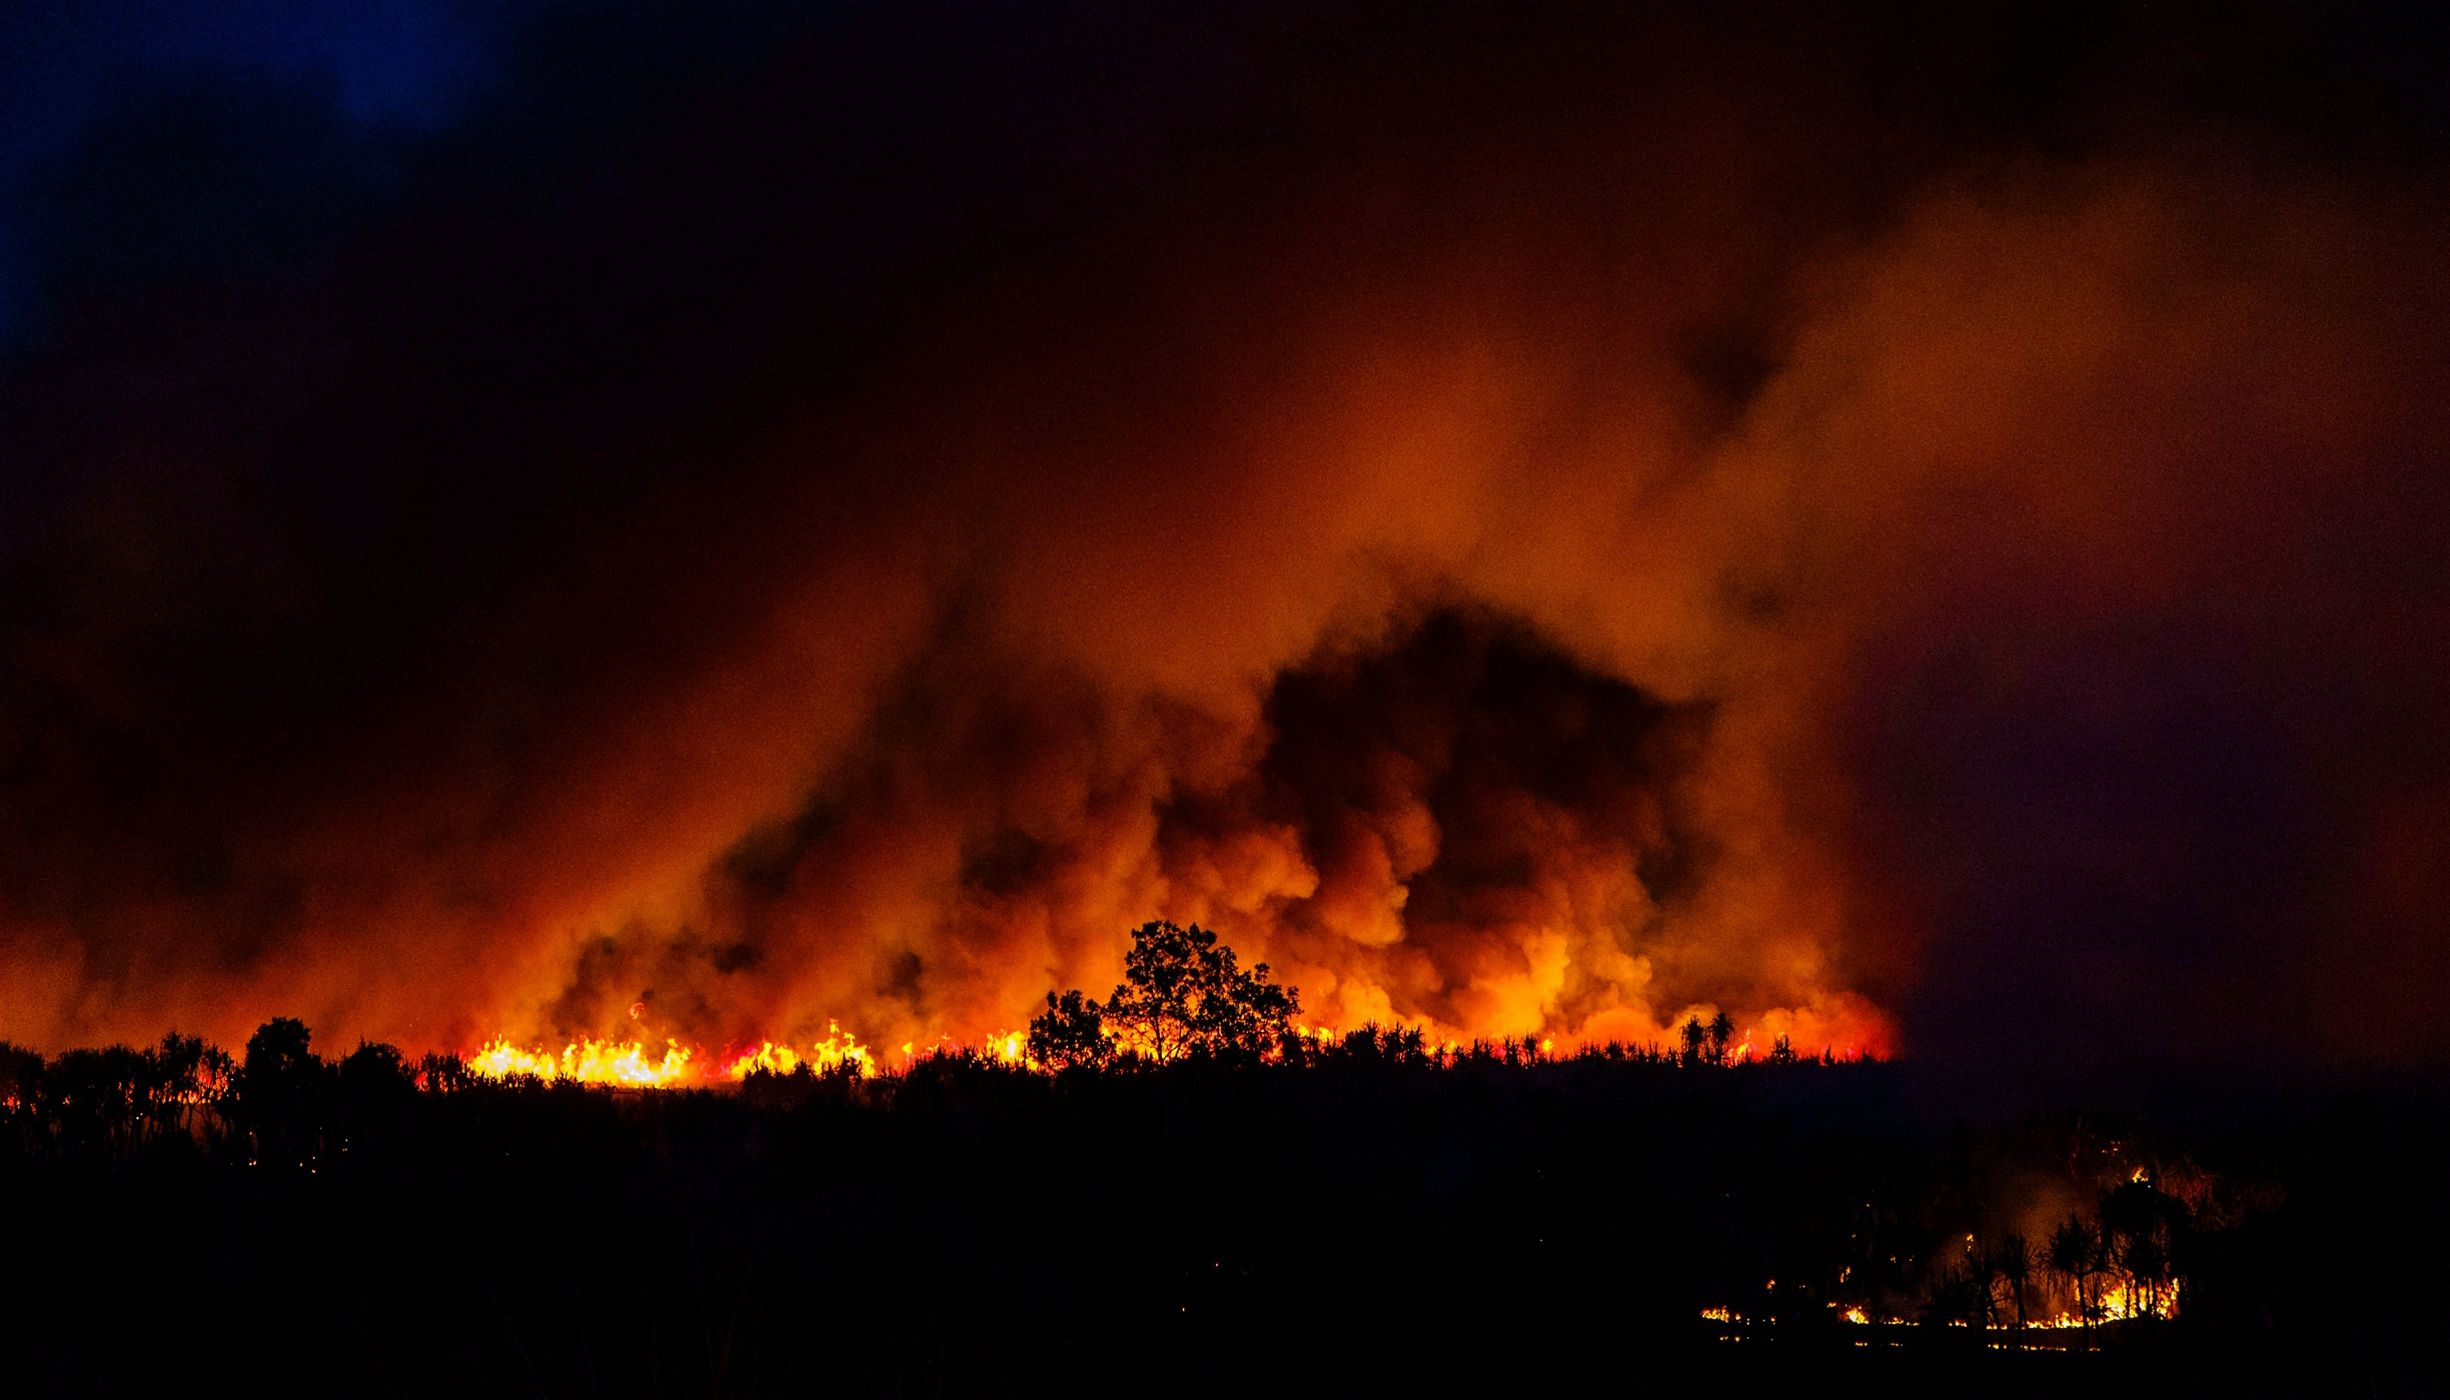 Bushfire rages in Australia